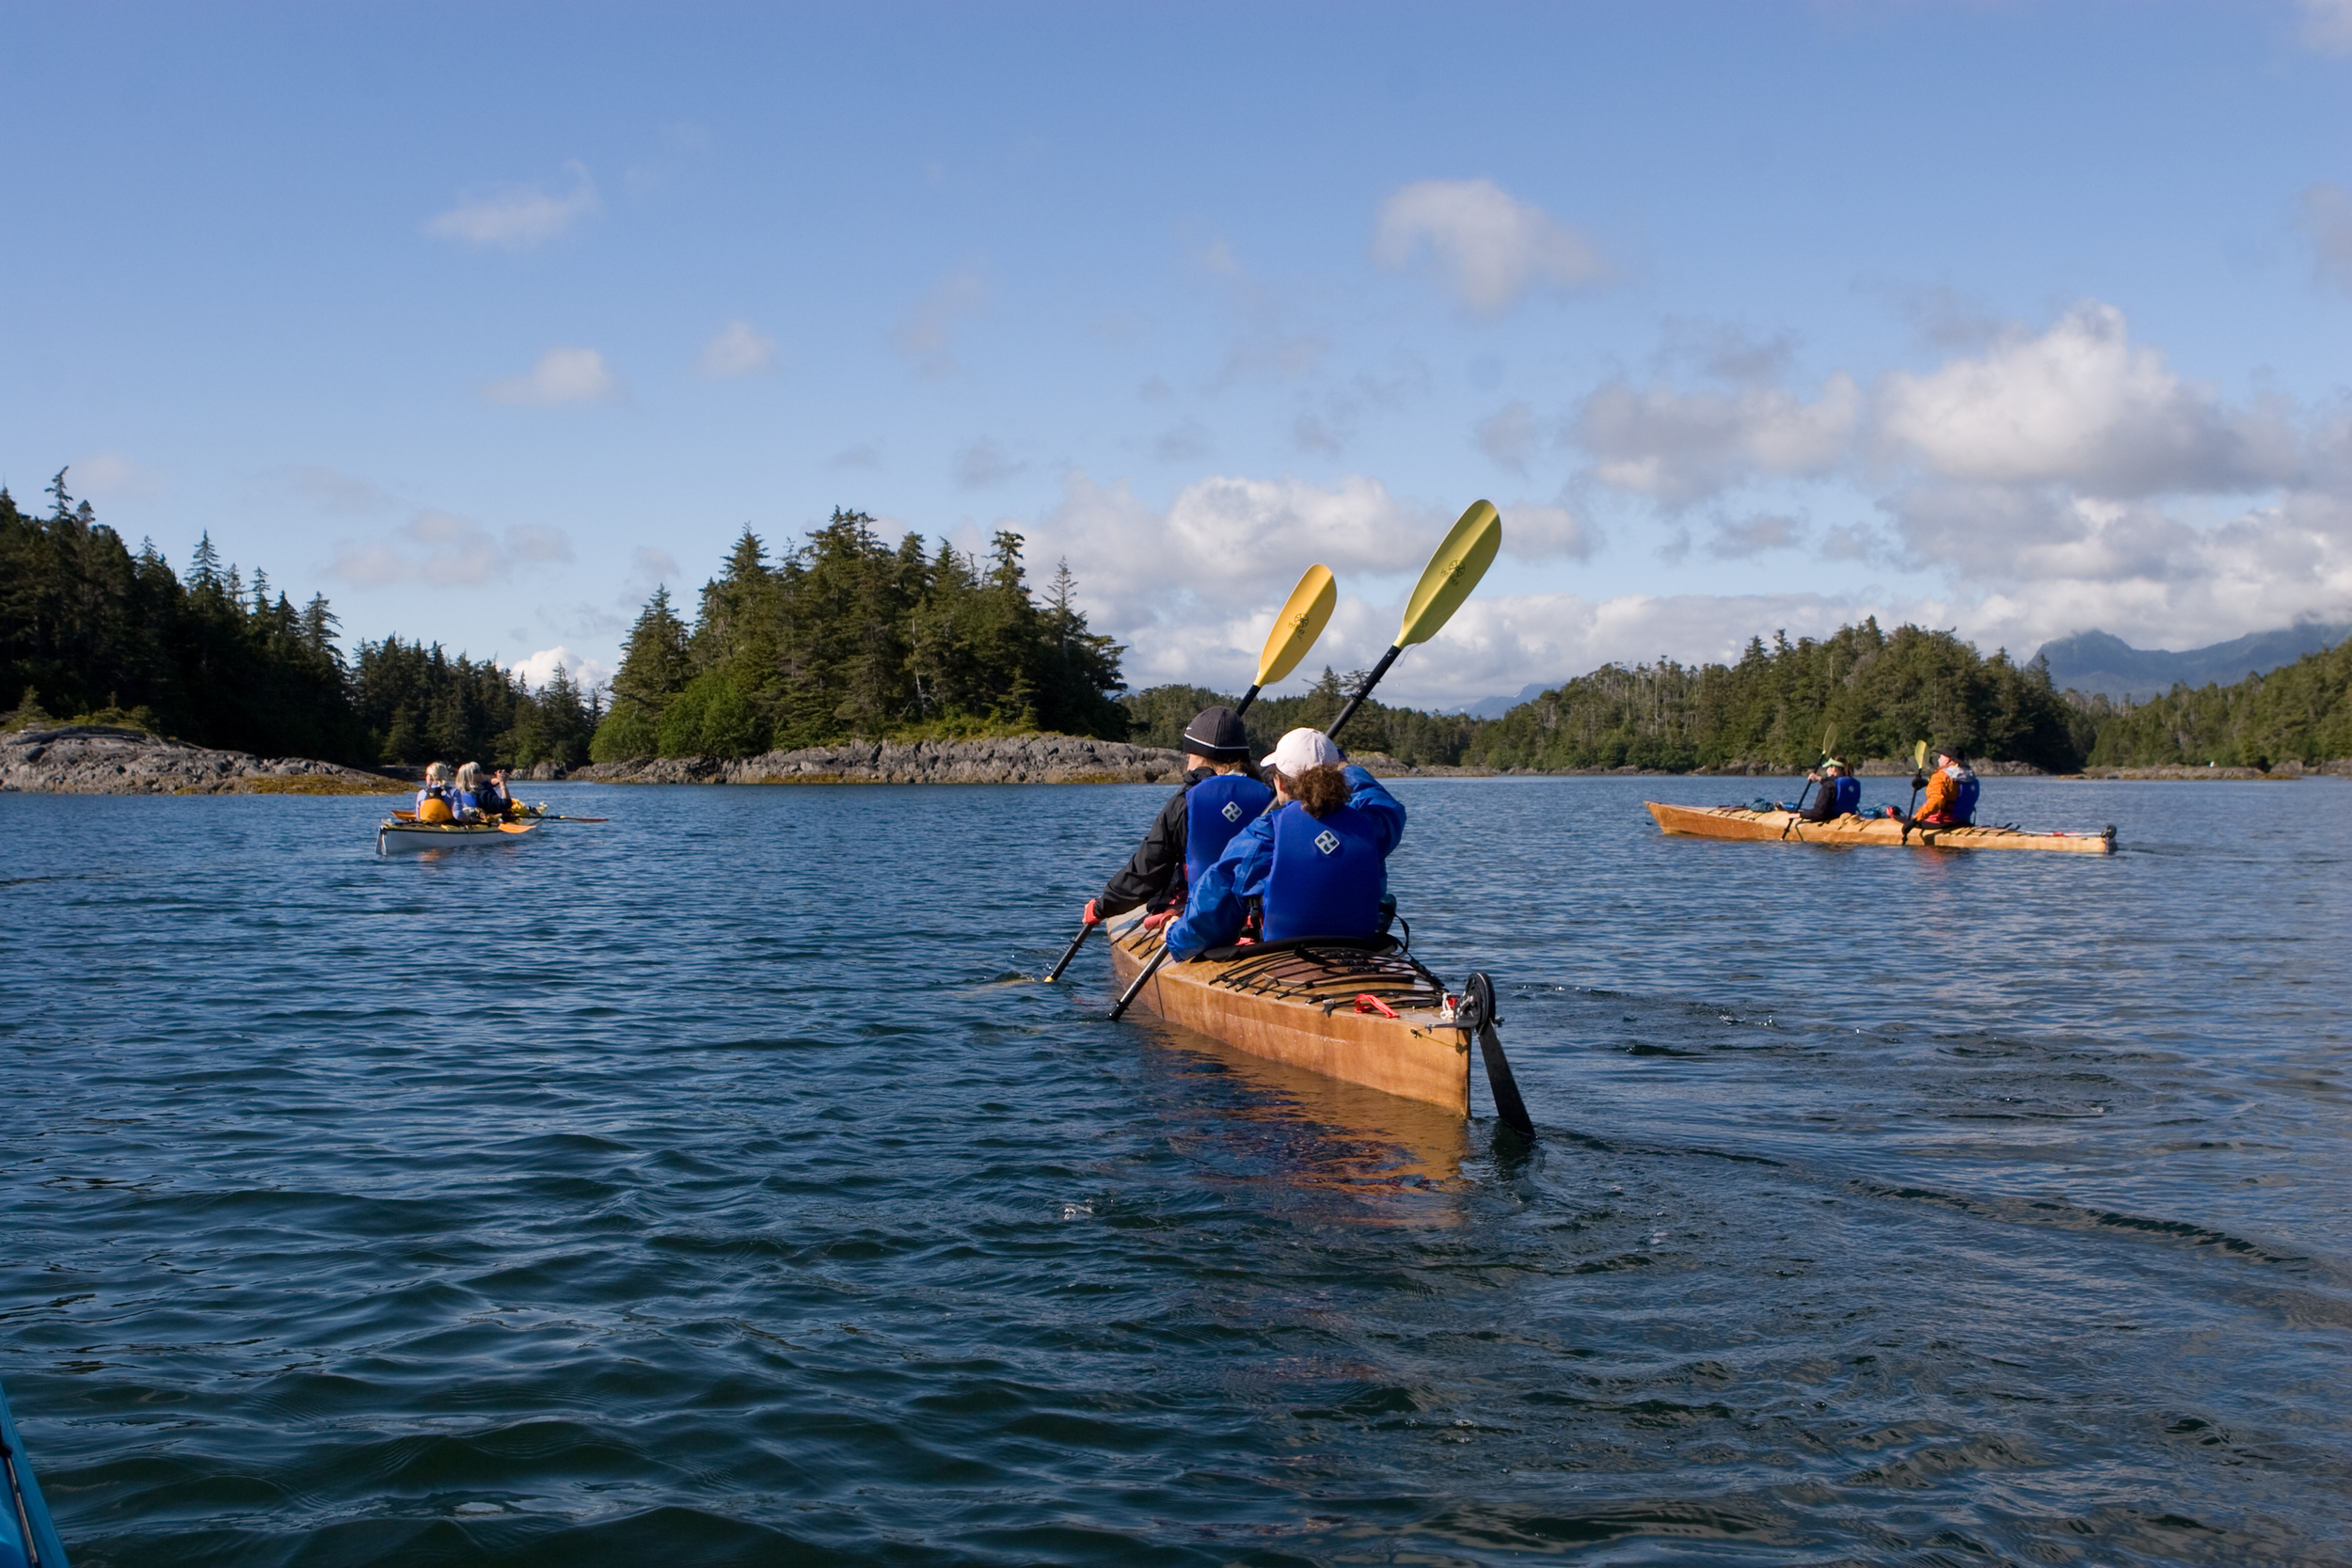 Paddlers use cs to navigate the channels between the small islands of the Myriad Islands in Alaska.